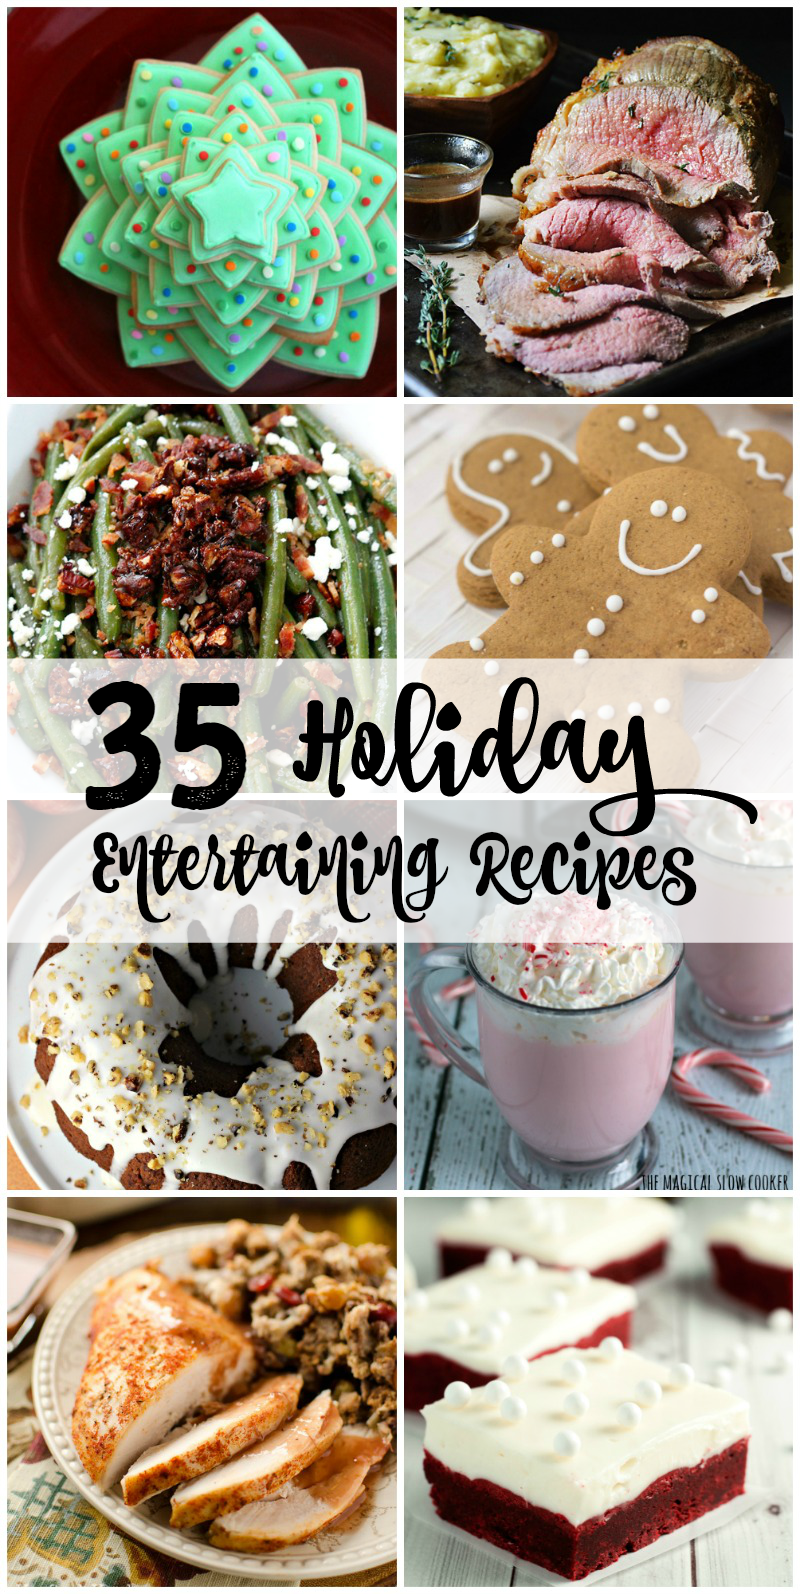 These 35 Holiday Entertaining Recipes will delight your taste buds and please you holiday guests all season long!